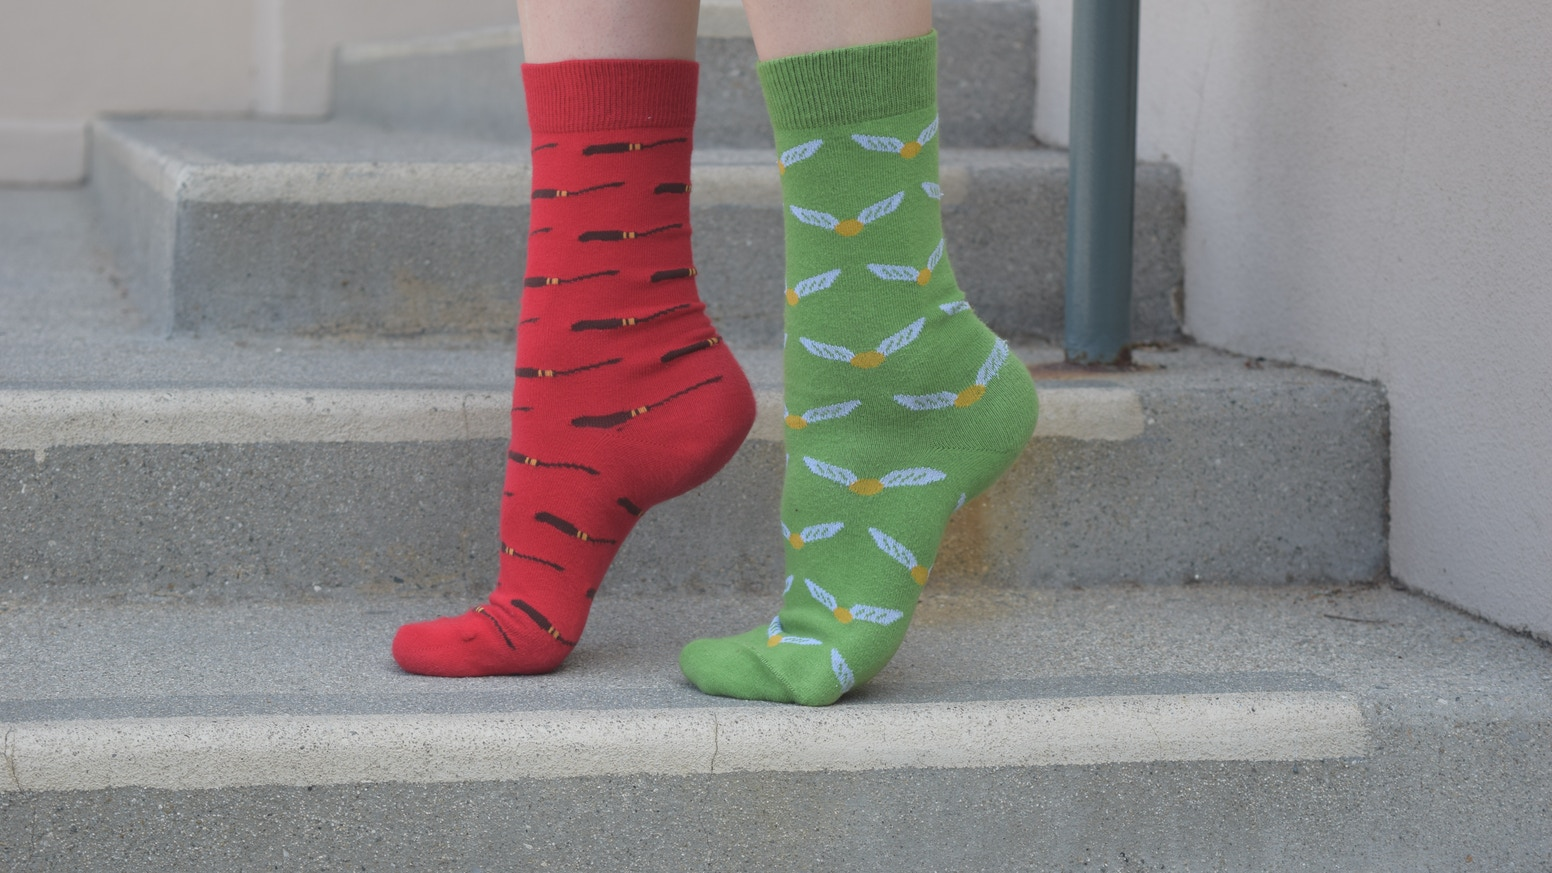 Harry Potter Christmas Gifts.Harry Potter Inspired Socks By Christy Rogers Kickstarter